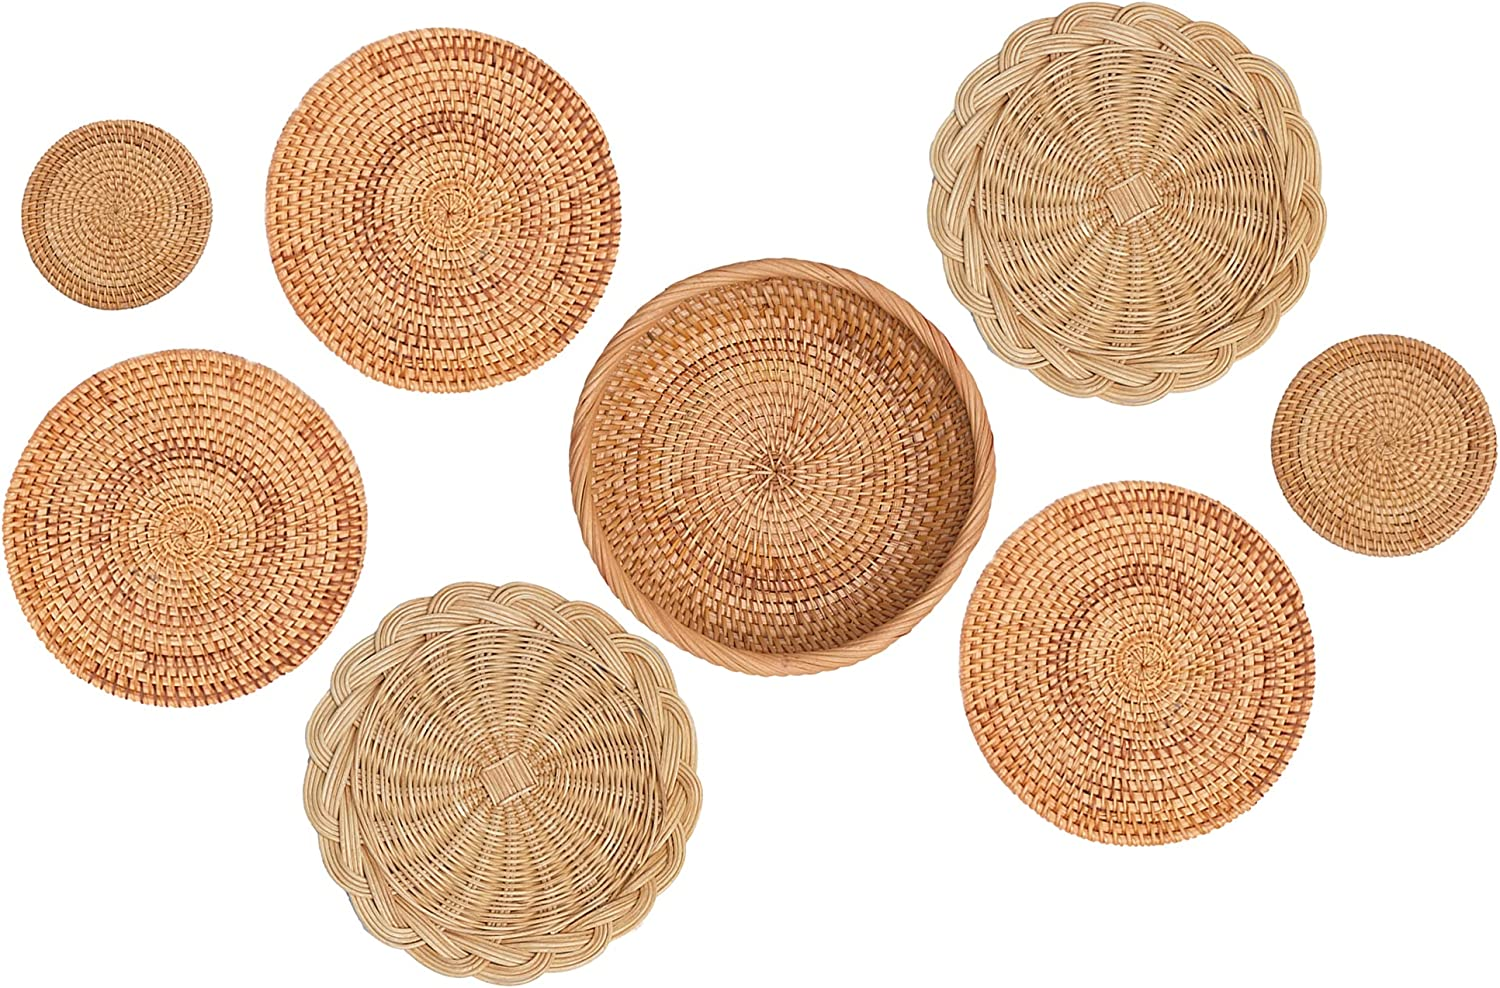 ChicnChill African Wall Baskets/Coasters, Set 8 of Wall Baskets Decor Boho Set, Handwoven Placemats of Bamboo for Wall Hanging